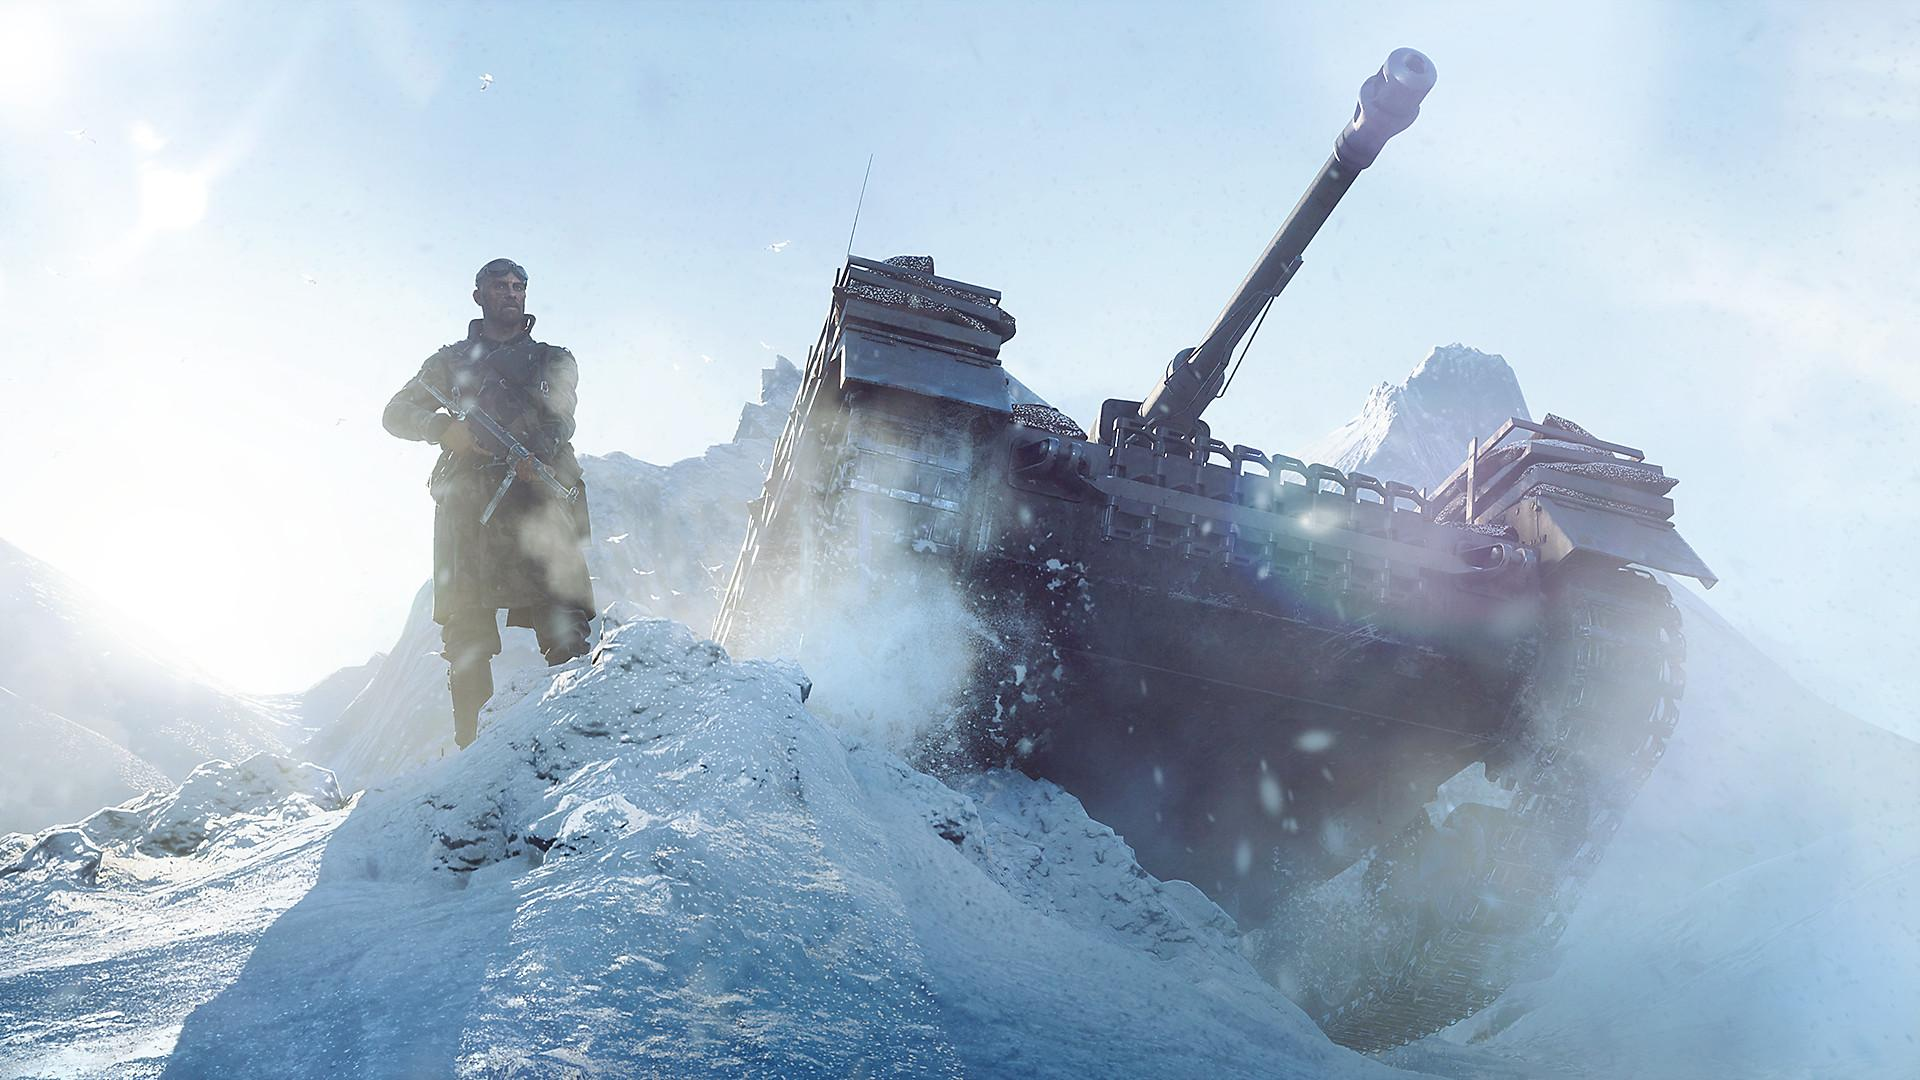 Battlefield V is once again powered by Frostbite – and looks best on an Nvdia RTX-powered PC